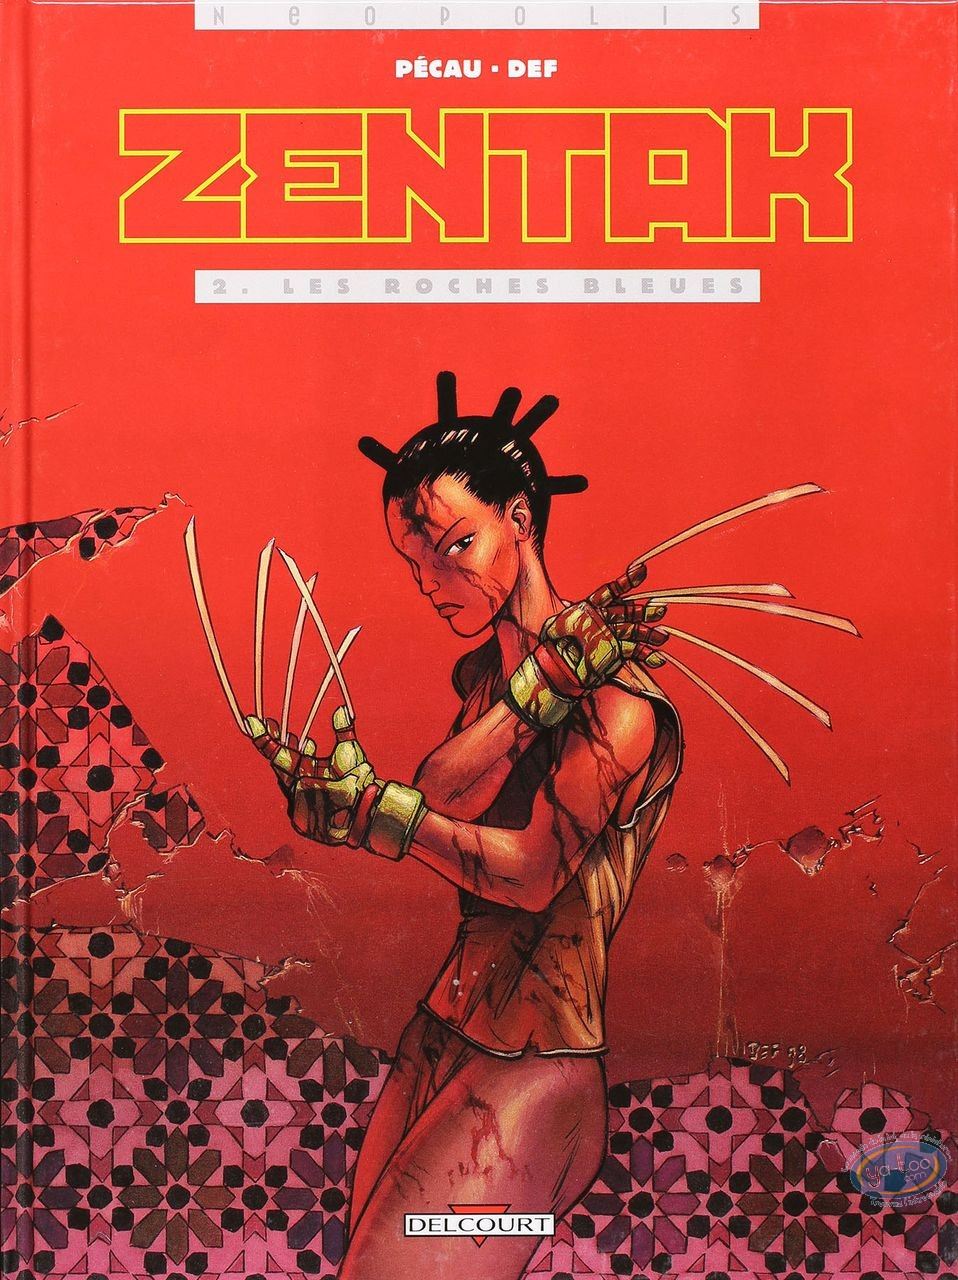 Listed European Comic Books, Zentak : Les roches bleues (very good condition)